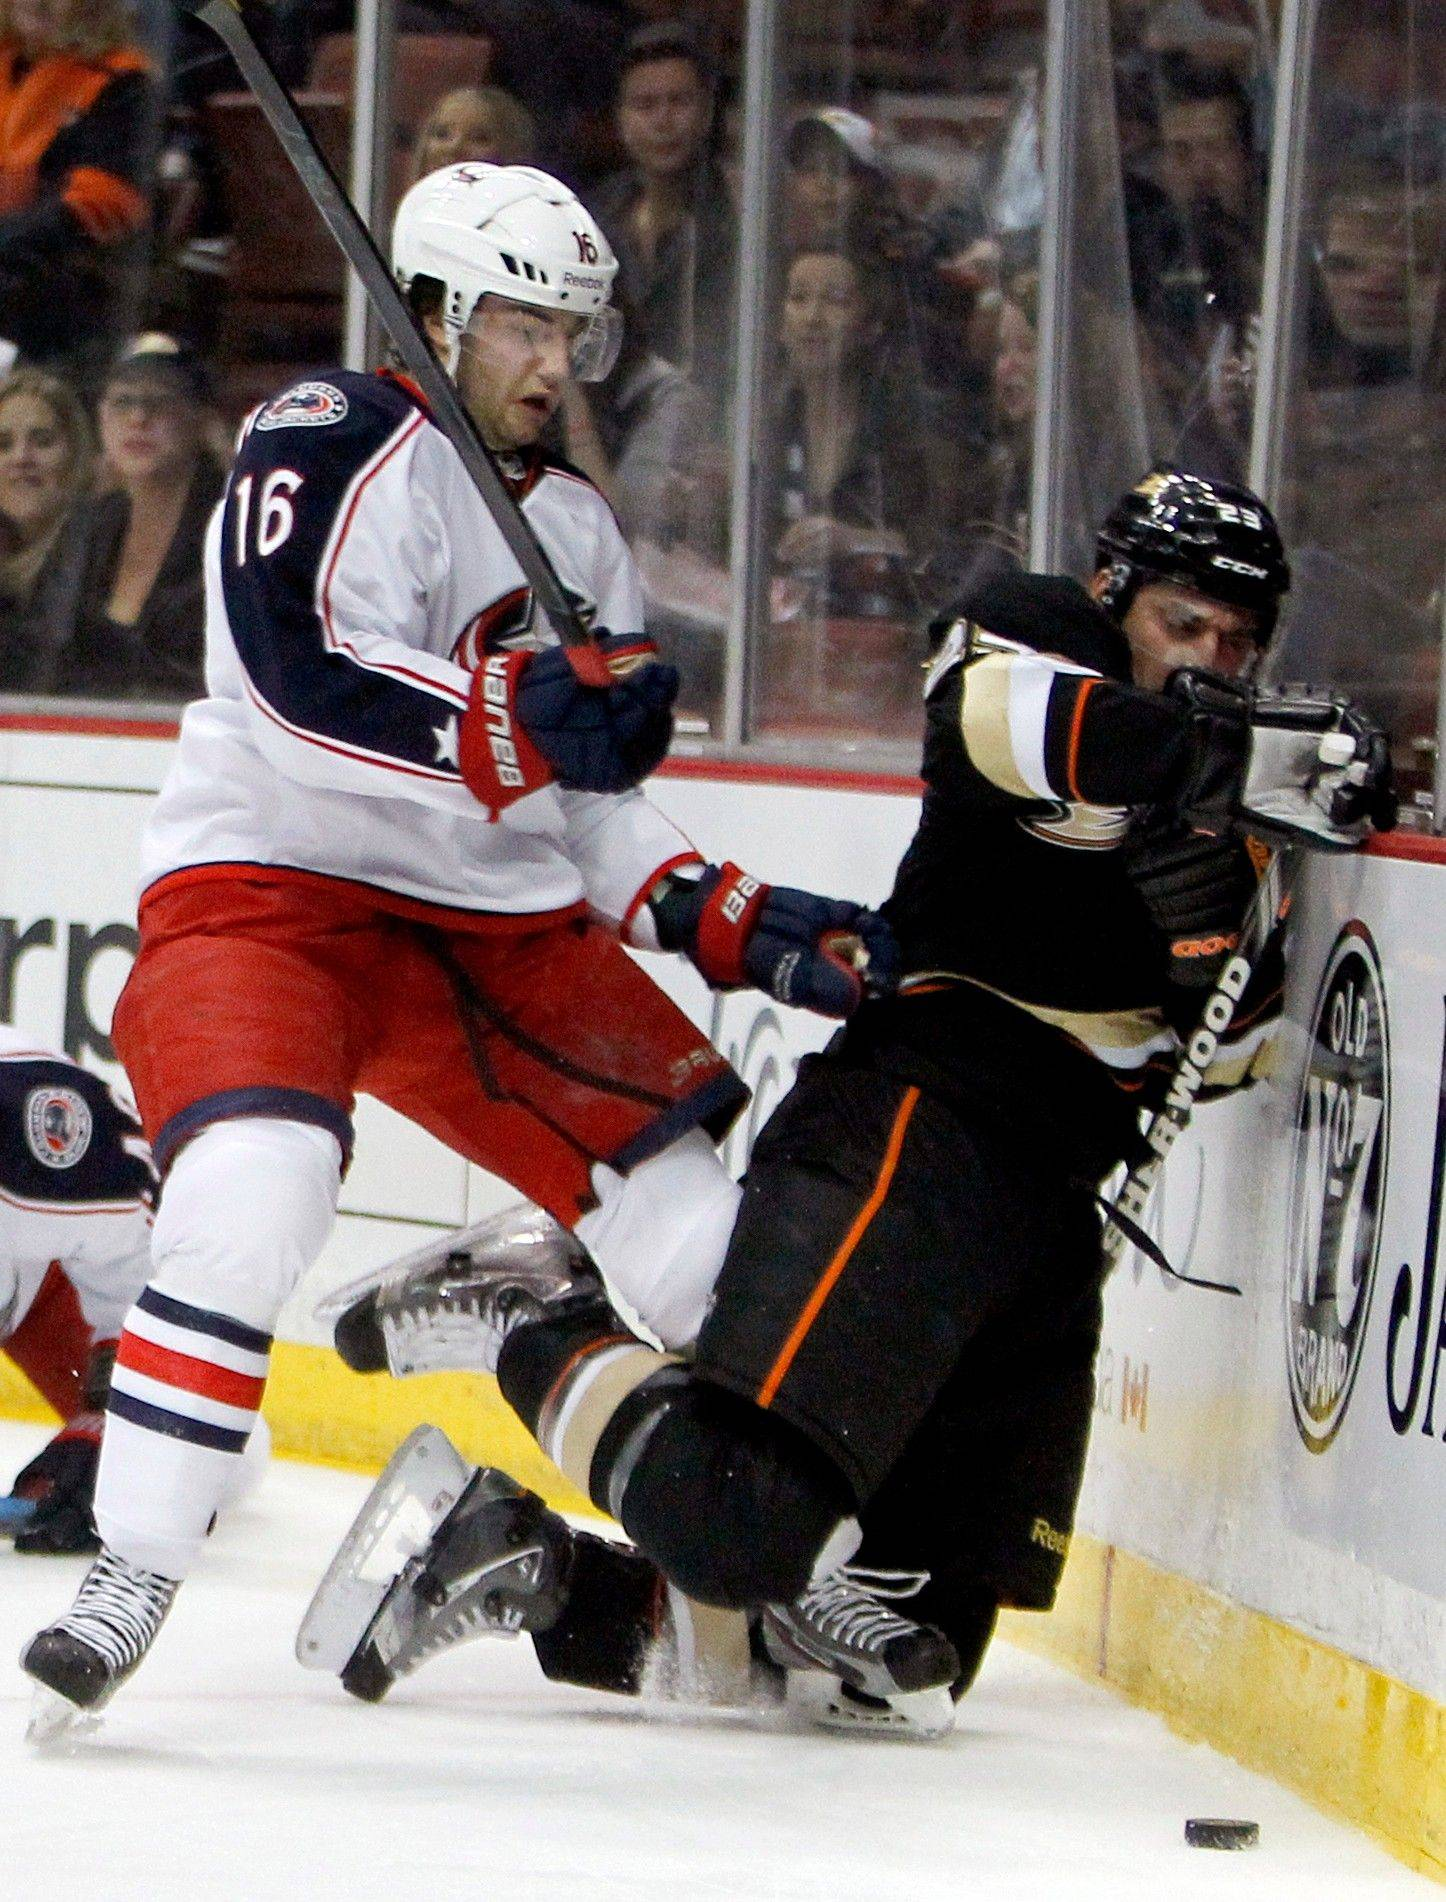 Columbus Blue Jackets center Derick Brassard hits Anaheim Ducks defenseman Francois Beauchemin into the boards Sunday during the first period.